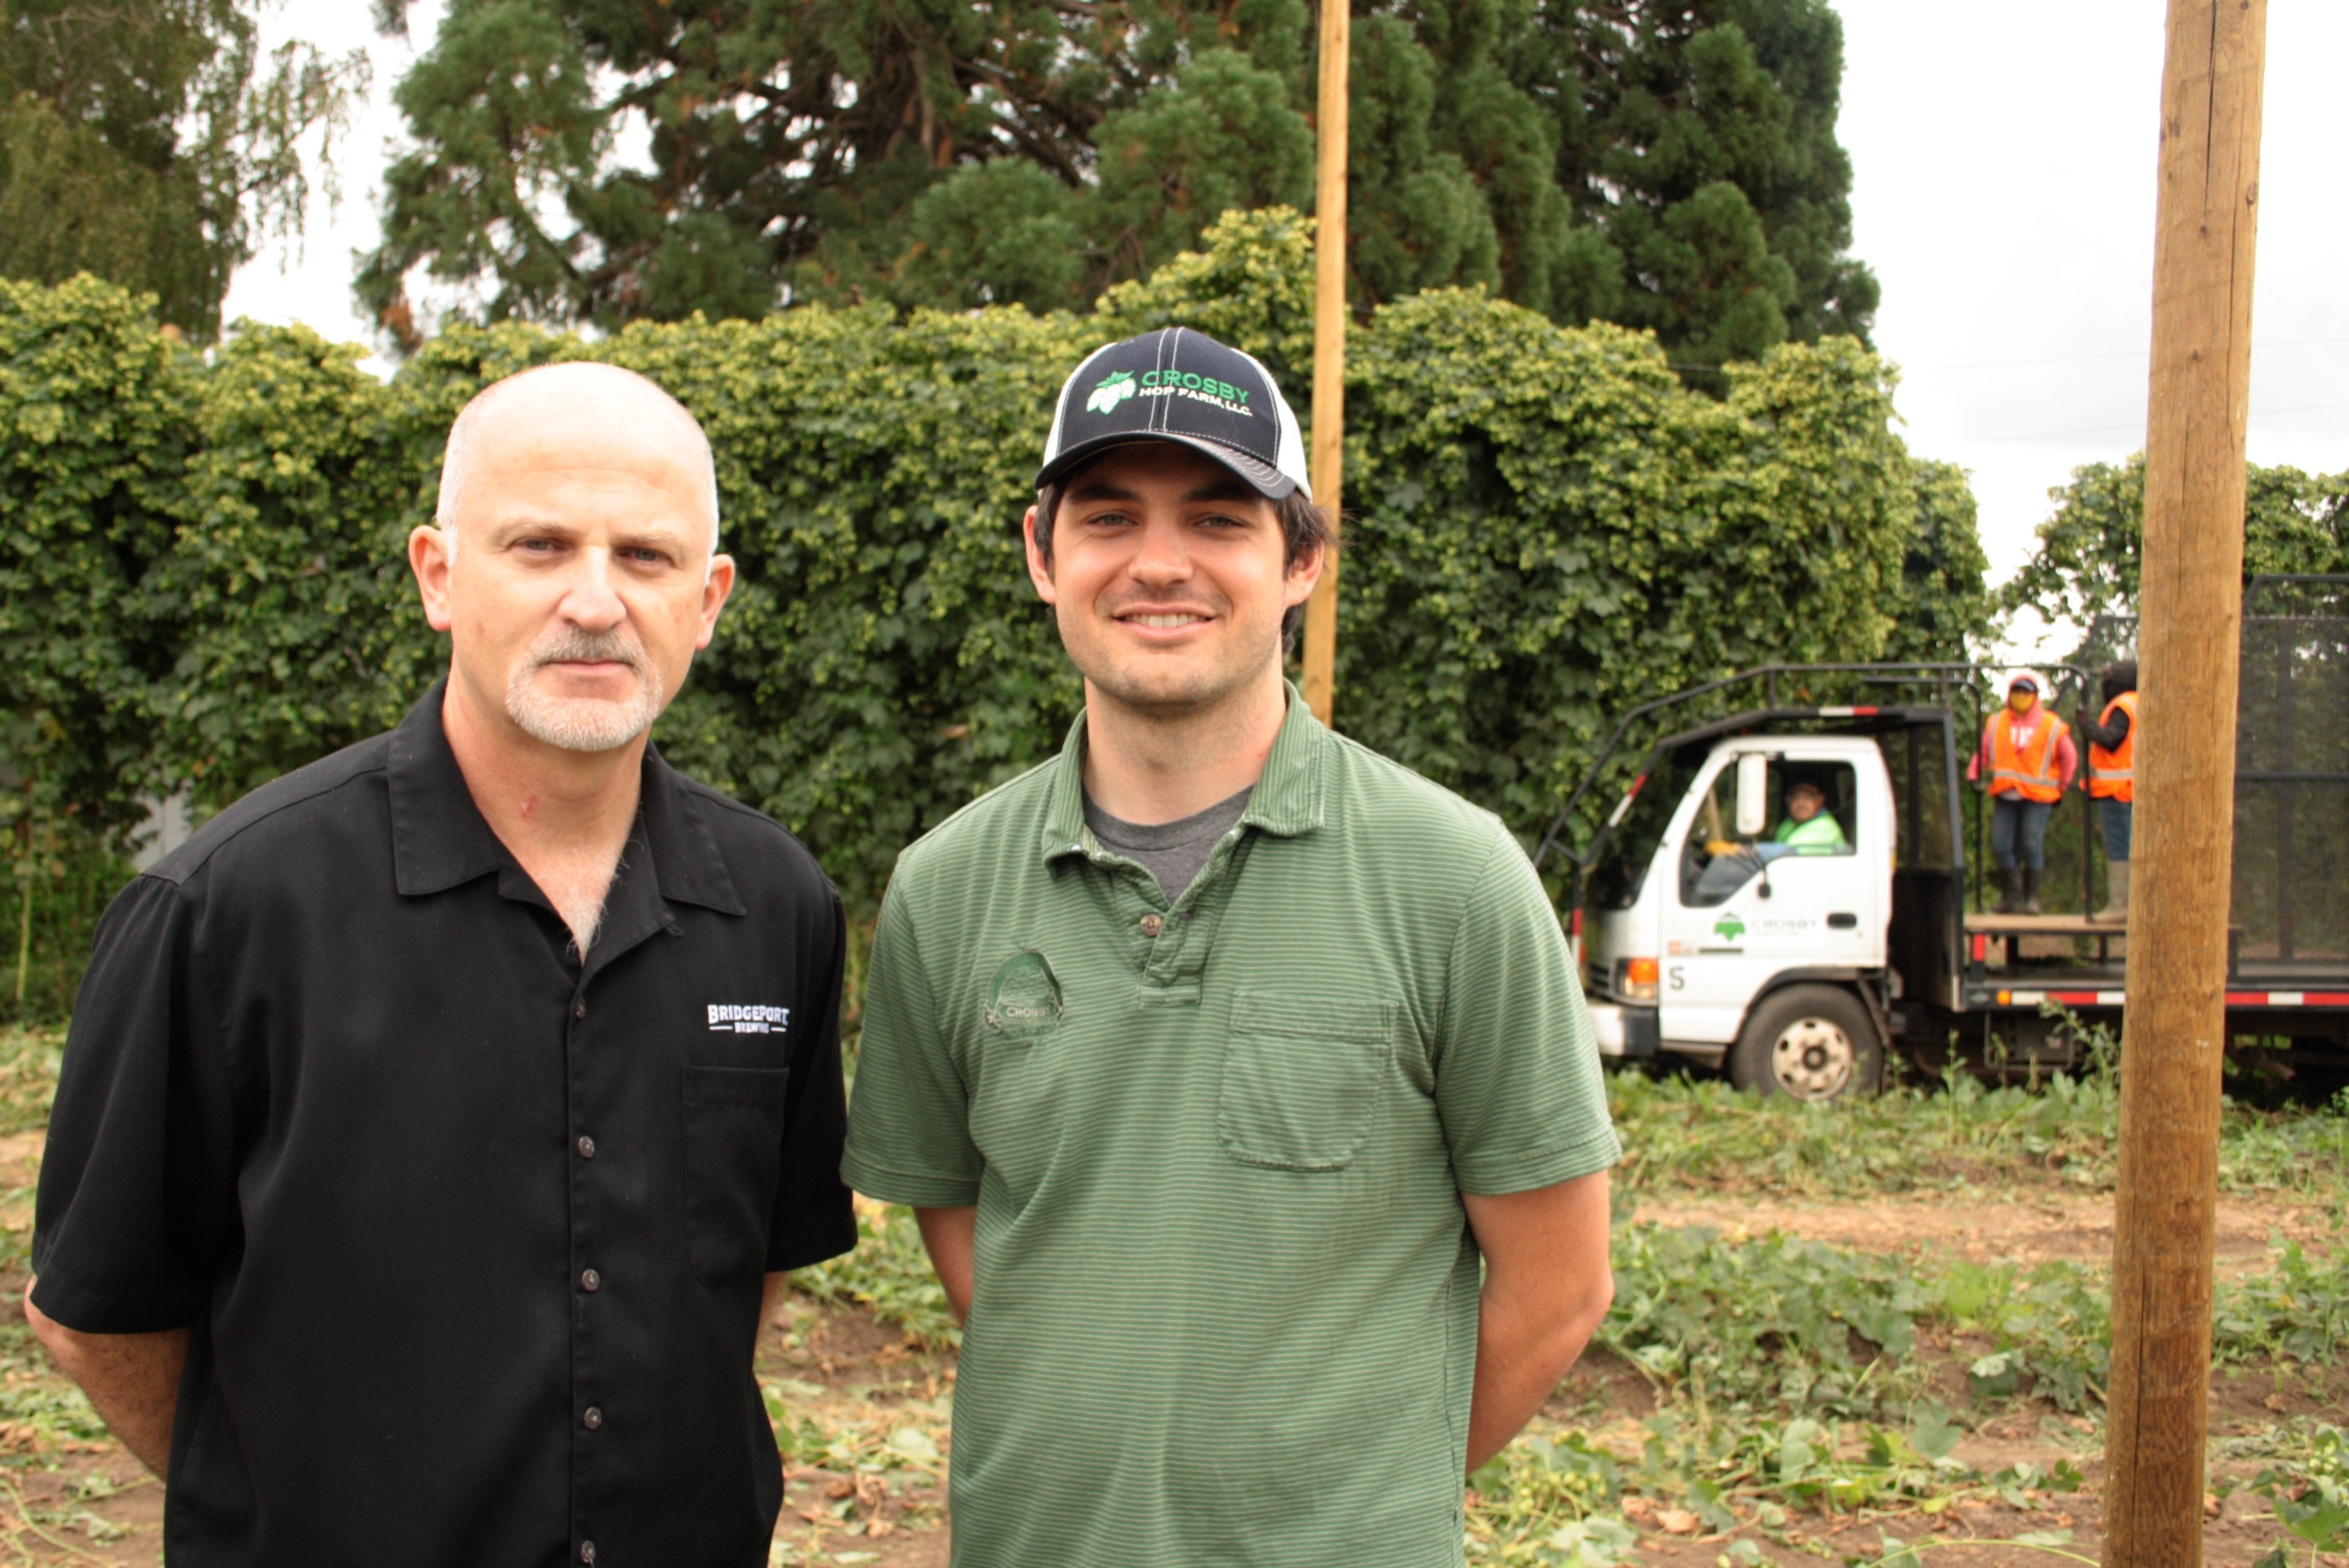 Jeff Edgerton of BridgePort Brewing and Blake Crosby of Crosby Hop Farm during the 2016 hop harvest. (photo by Ryan Spencer)